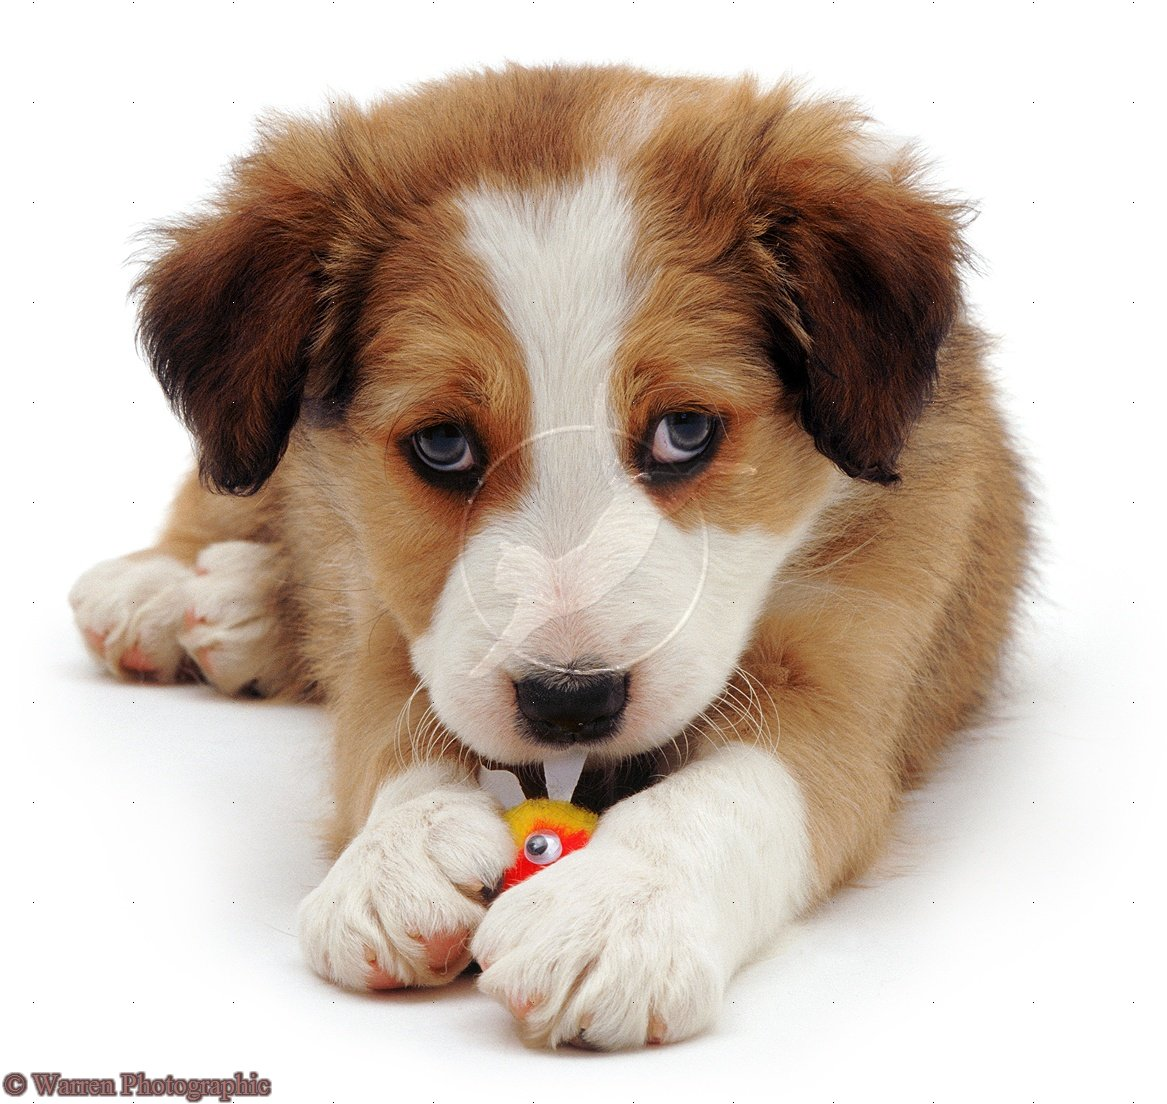 Cute Puppy Dogs: cute border collie puppies